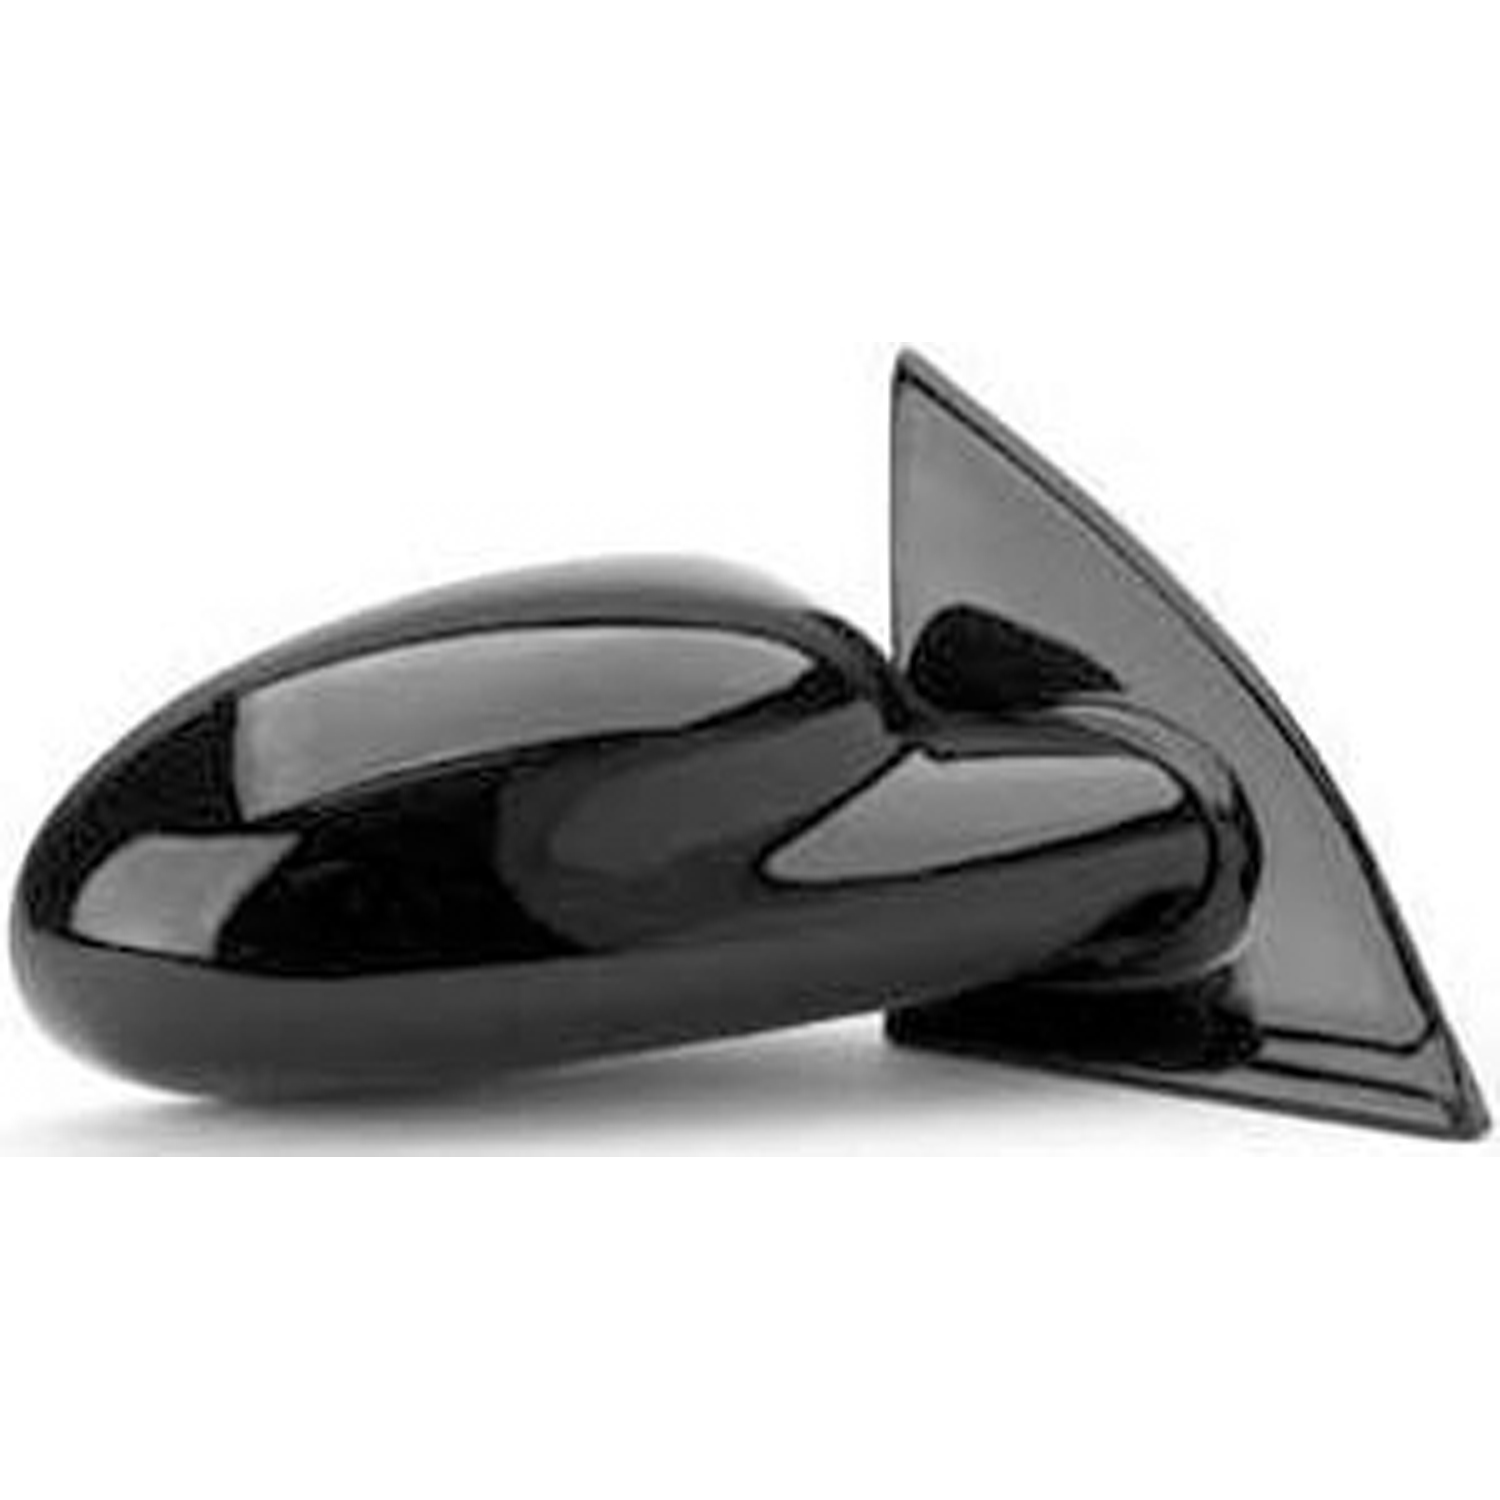 1997-2002 Saturn SC1  Passenger Side Right Manual Door Mirror Assembly, 21112674; 21097596